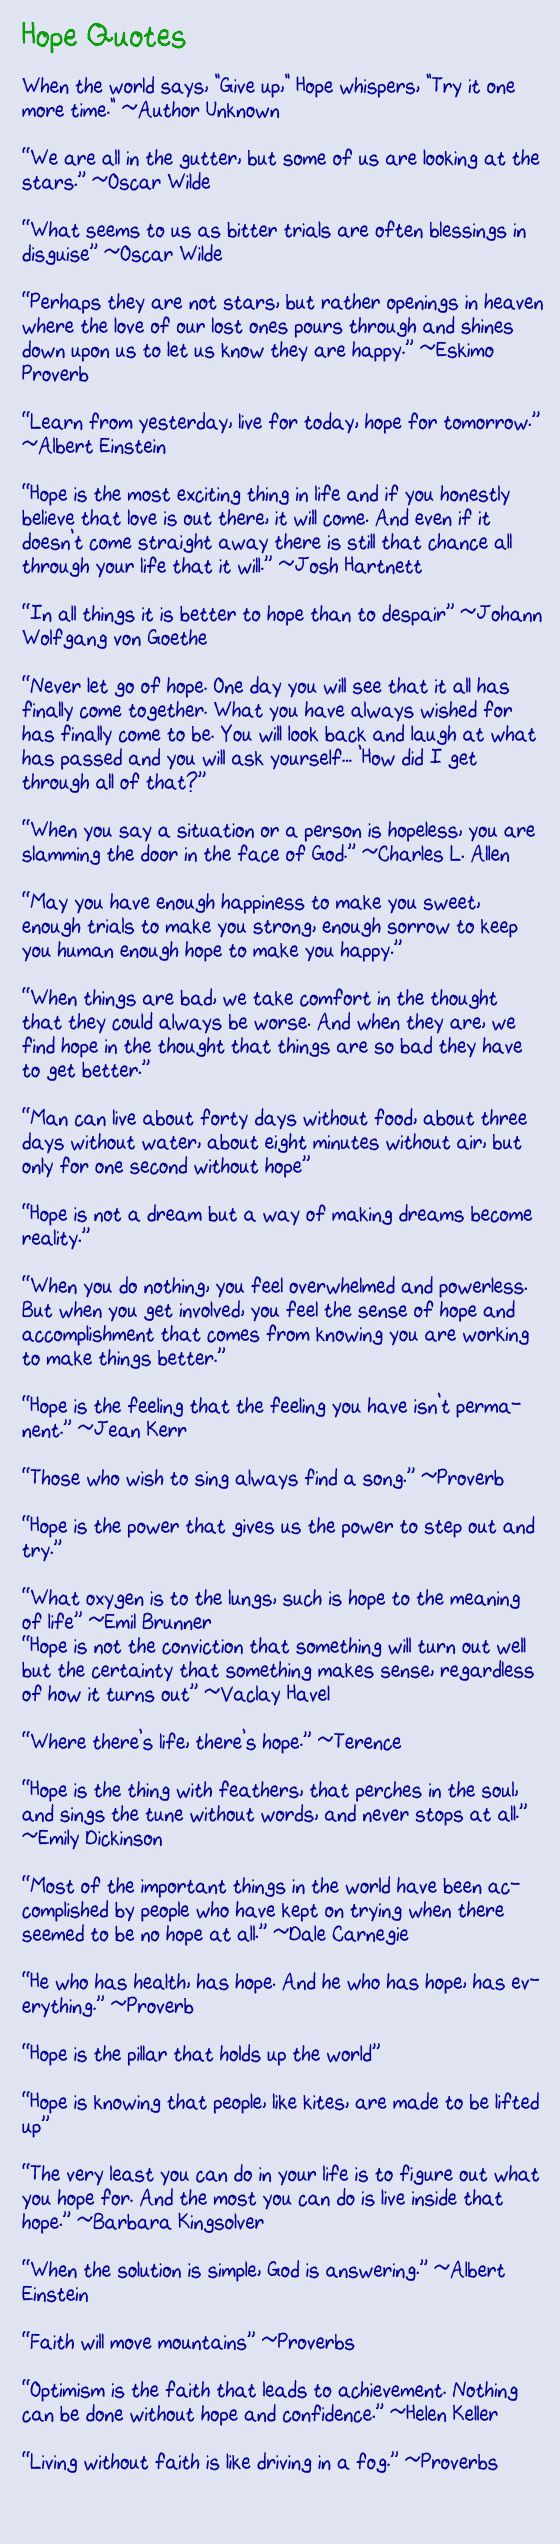 Relay For Life Quotes Great Sport Fundraiser Poster  Relay For Life  Pinterest